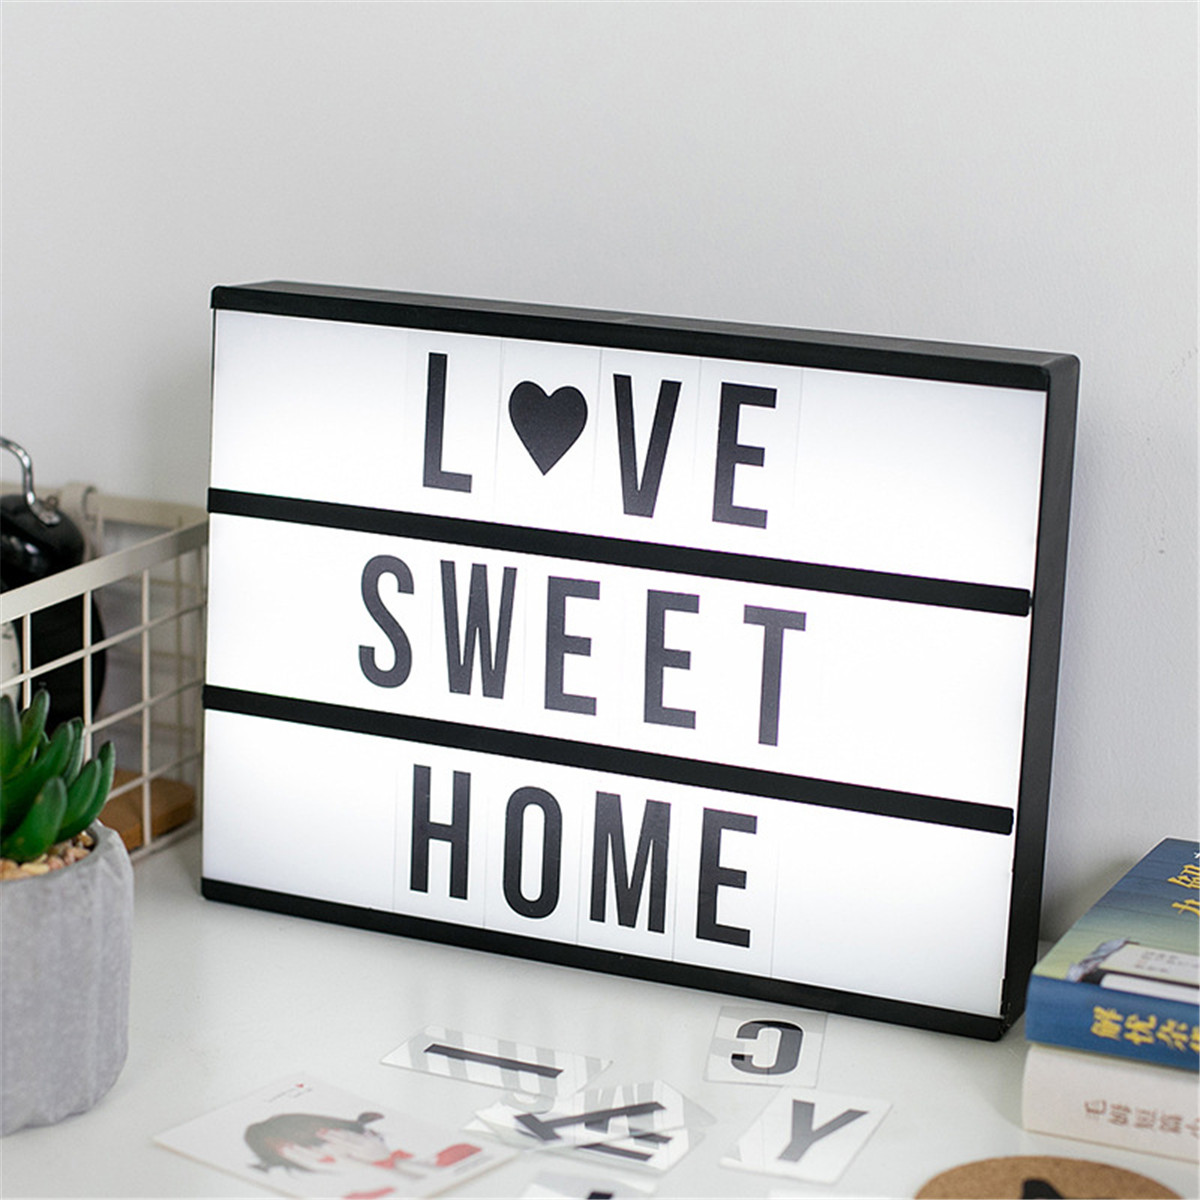 141 Letters A4 Cinematic Cinema Light Up Letter Box Sign Light Box Wedding Party Baby Toys